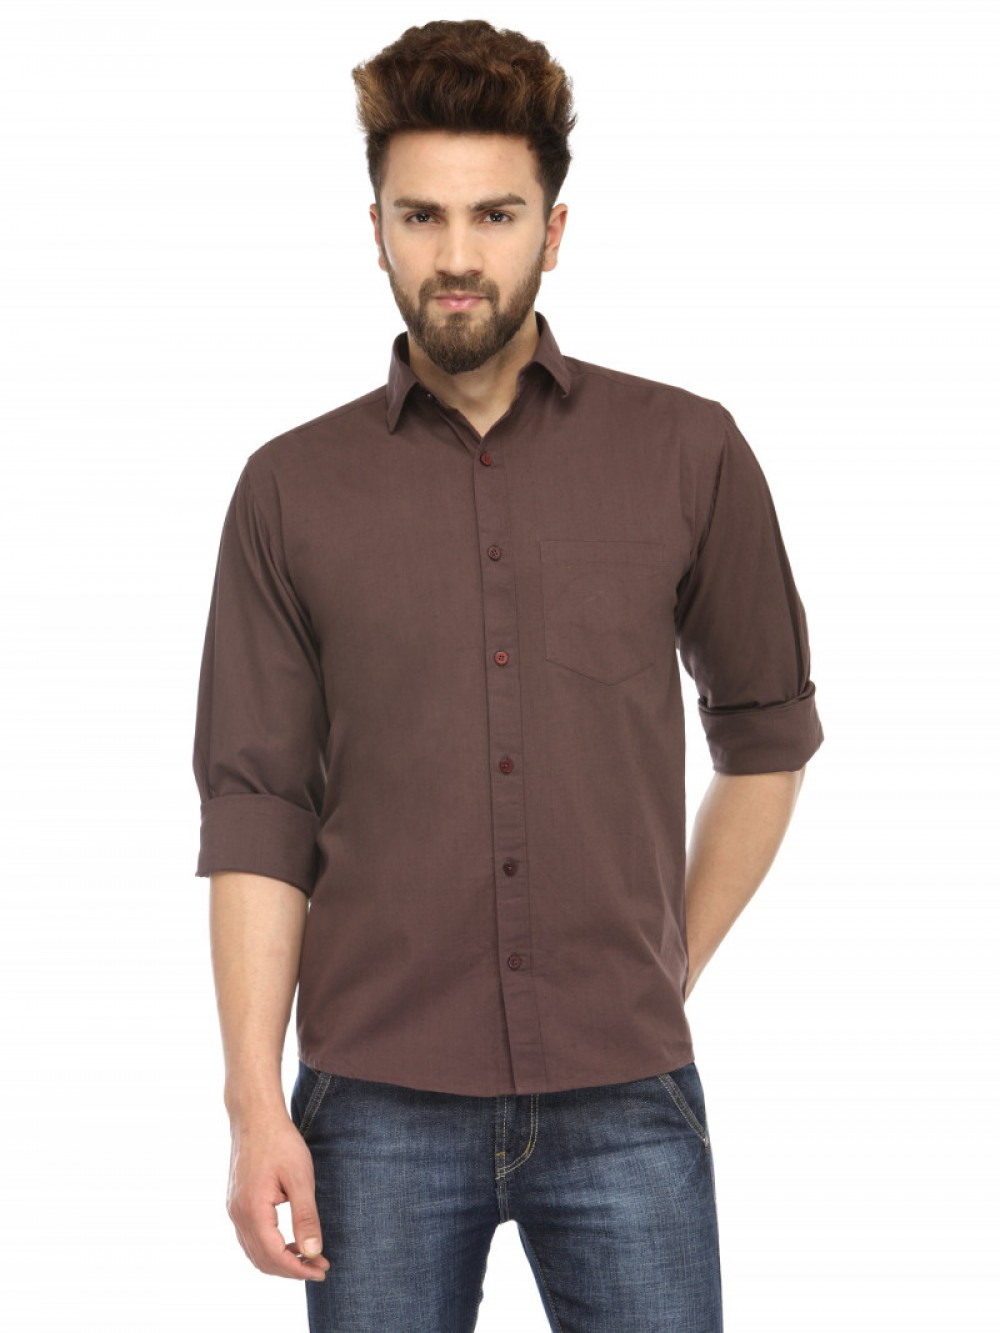 Light Coffee Color Attractive Wear Shirt